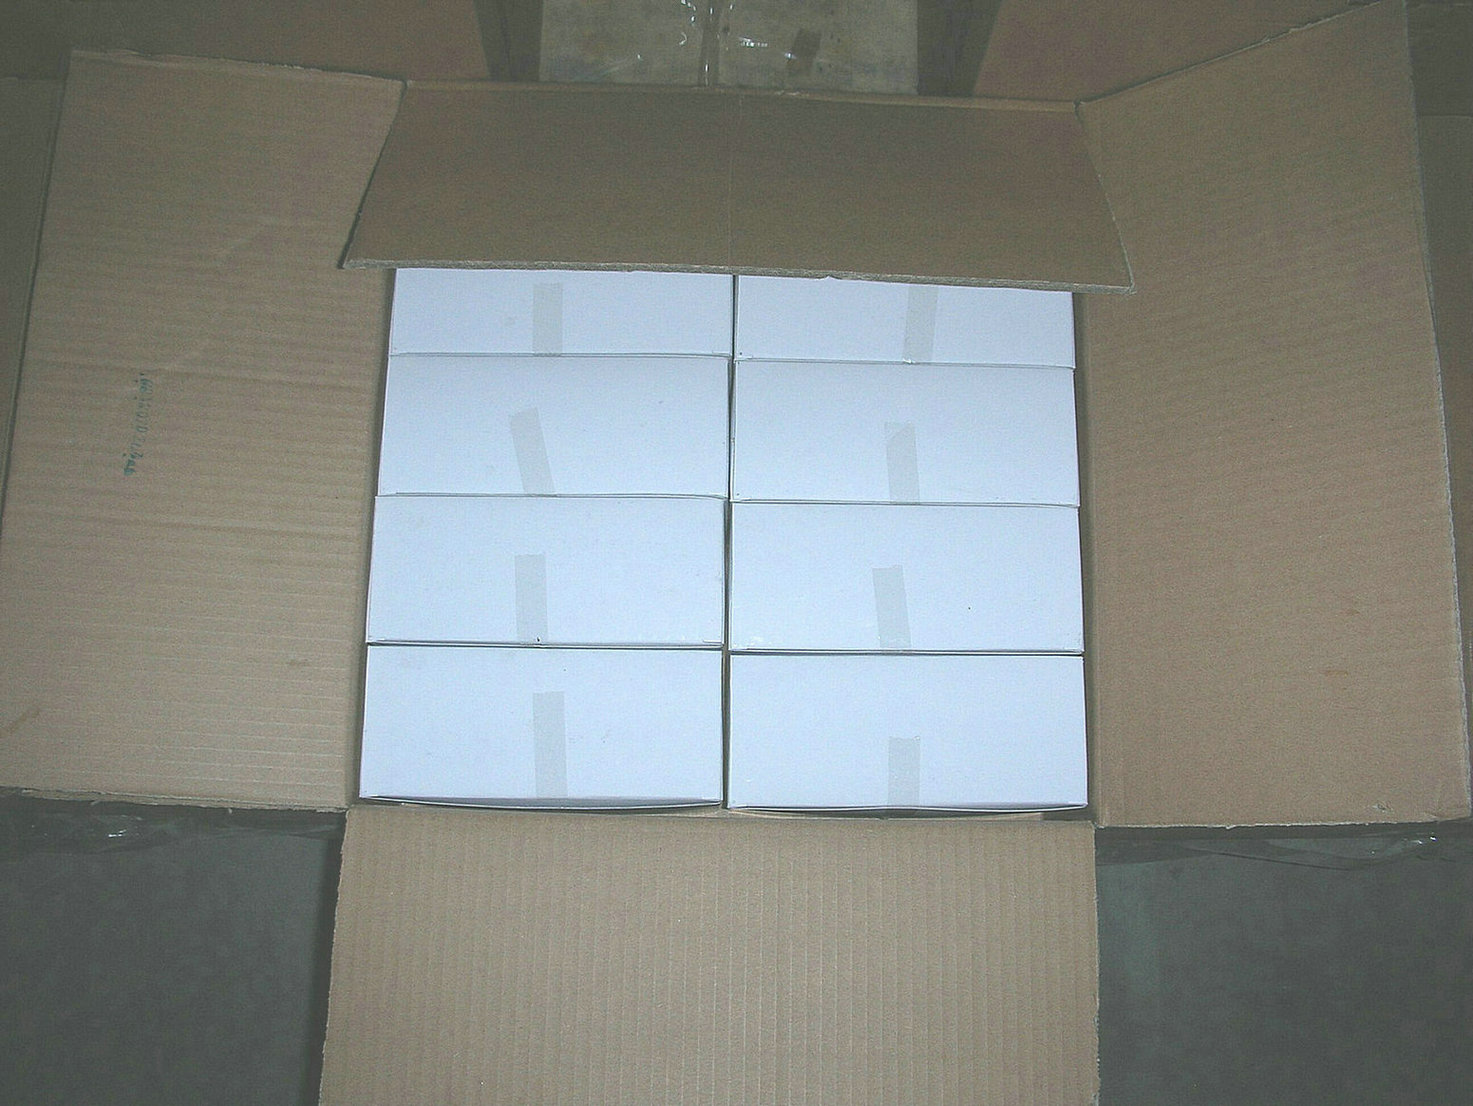 Packaging of Inner Box